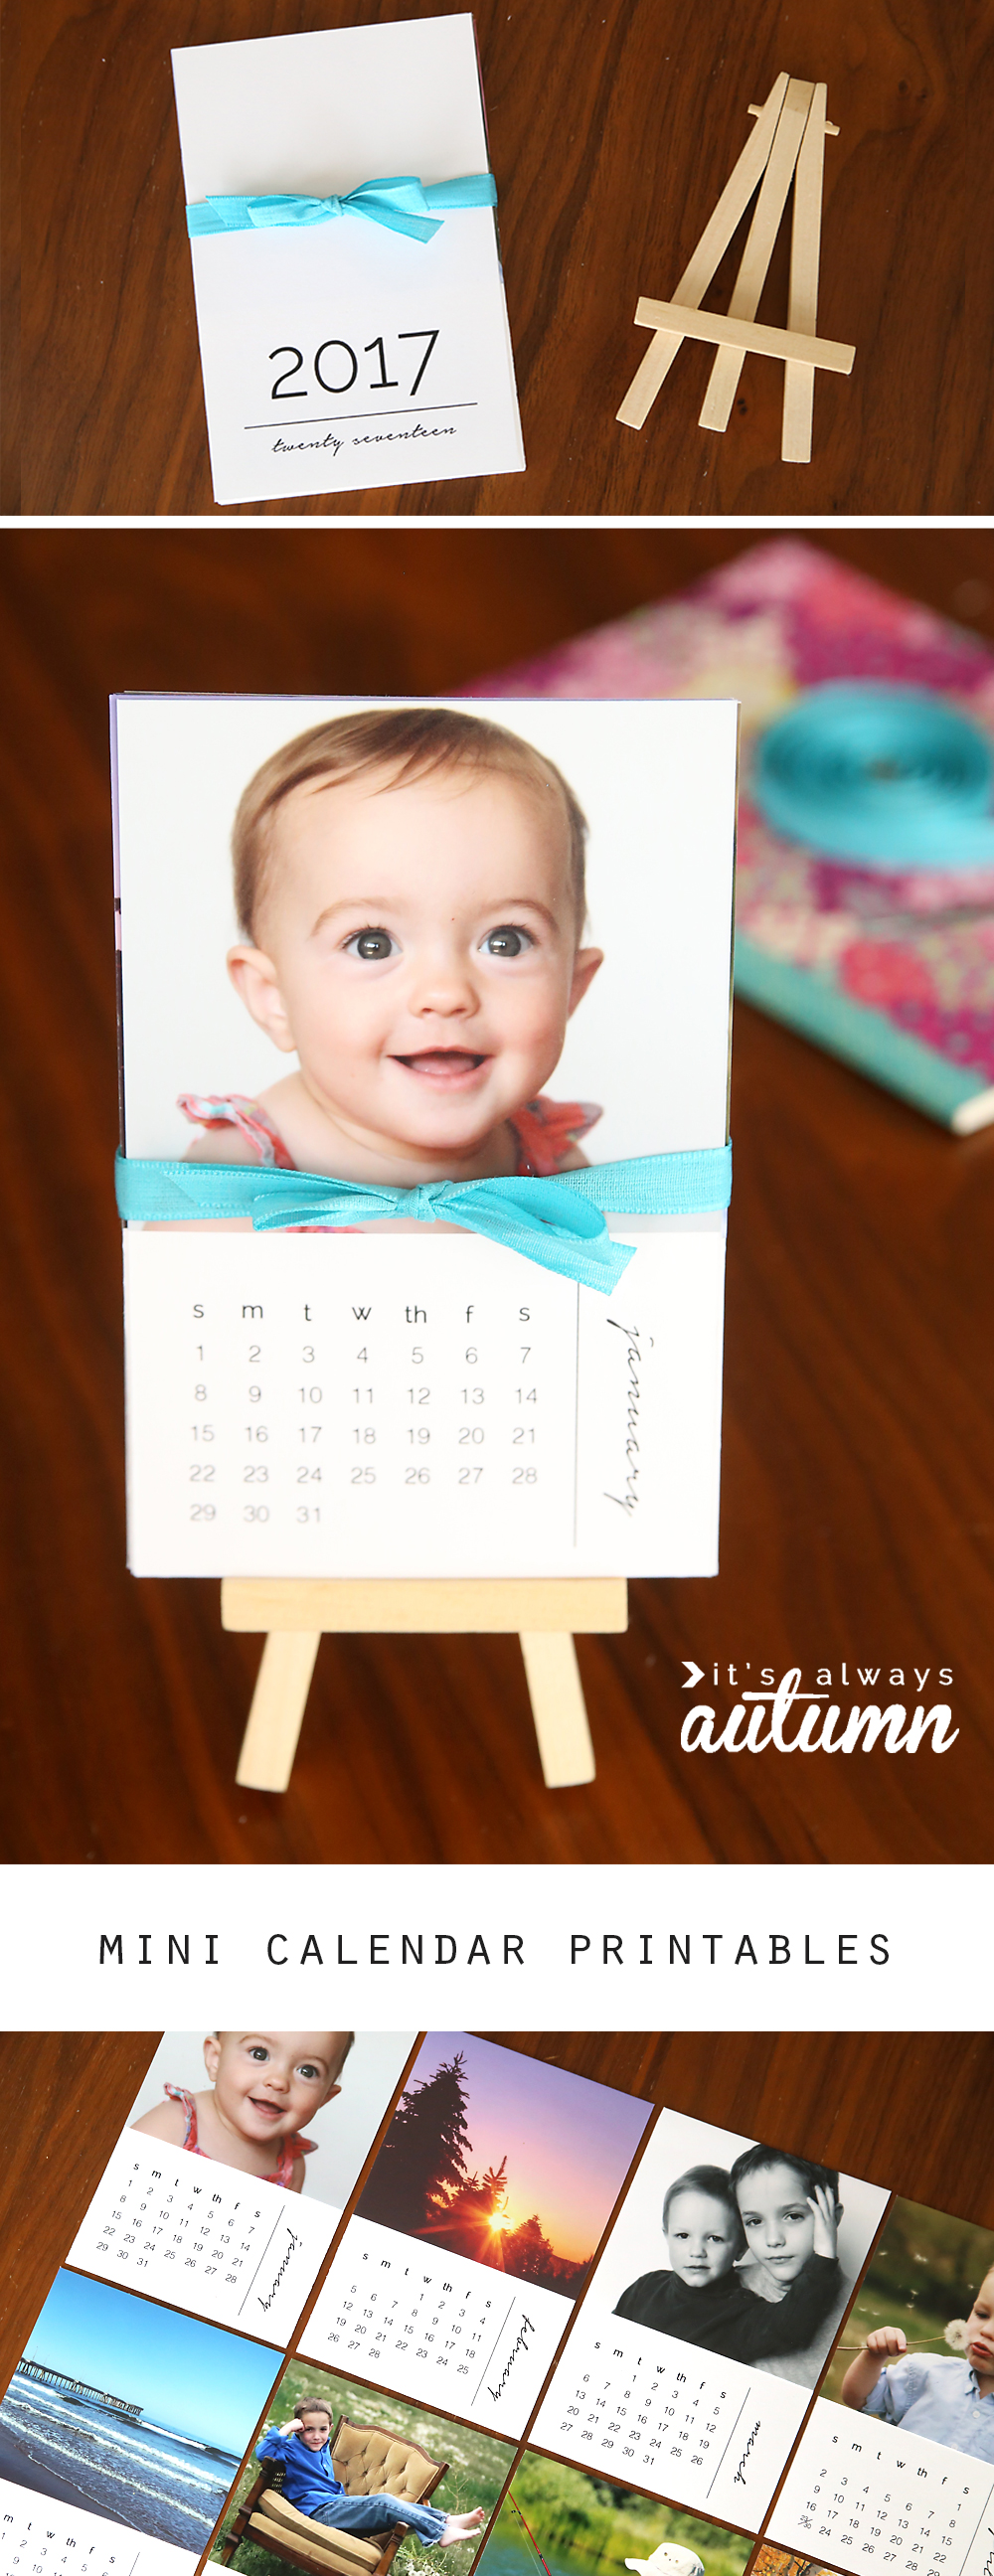 Diy Calendar With Pictures : Diy mini photo calendar w free printables it s always autumn